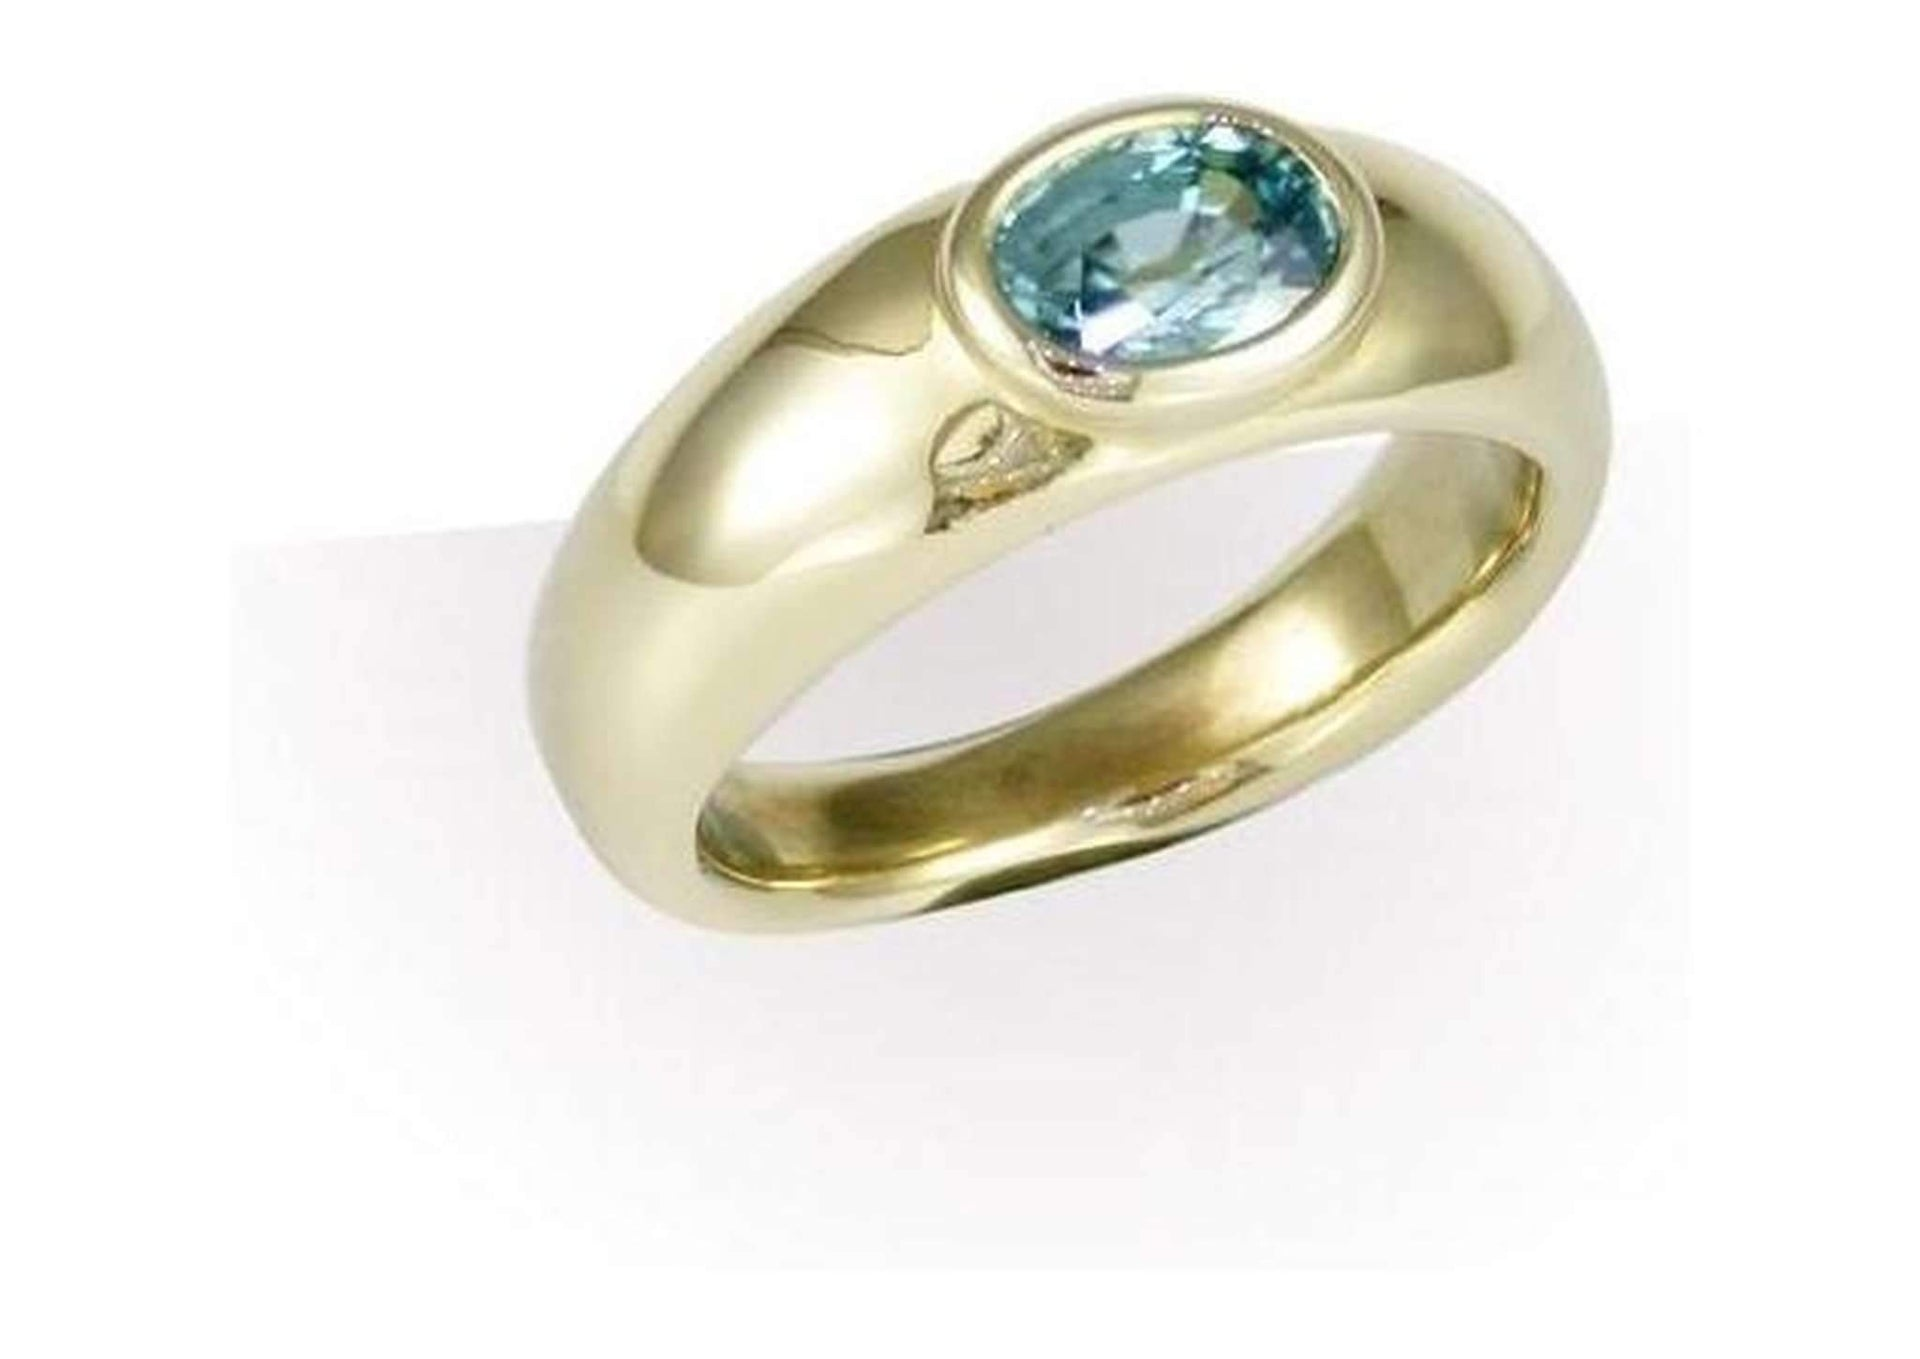 9ct Gold & Blue Zircon Ring   - Jens Hansen